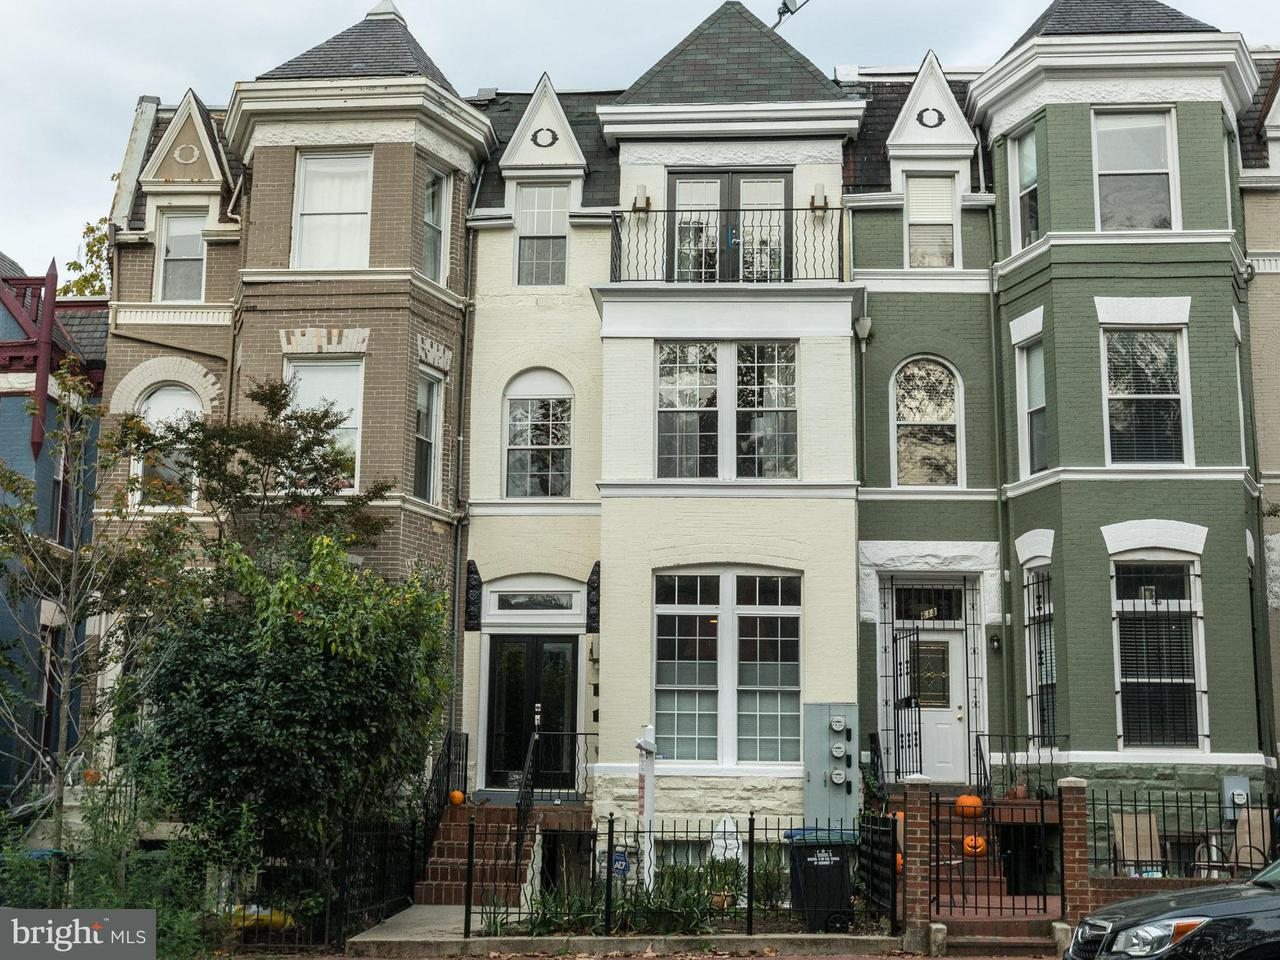 Multi-Family Home for Sale at 615 8TH ST NE 615 8TH ST NE Washington, District Of Columbia 20002 United States